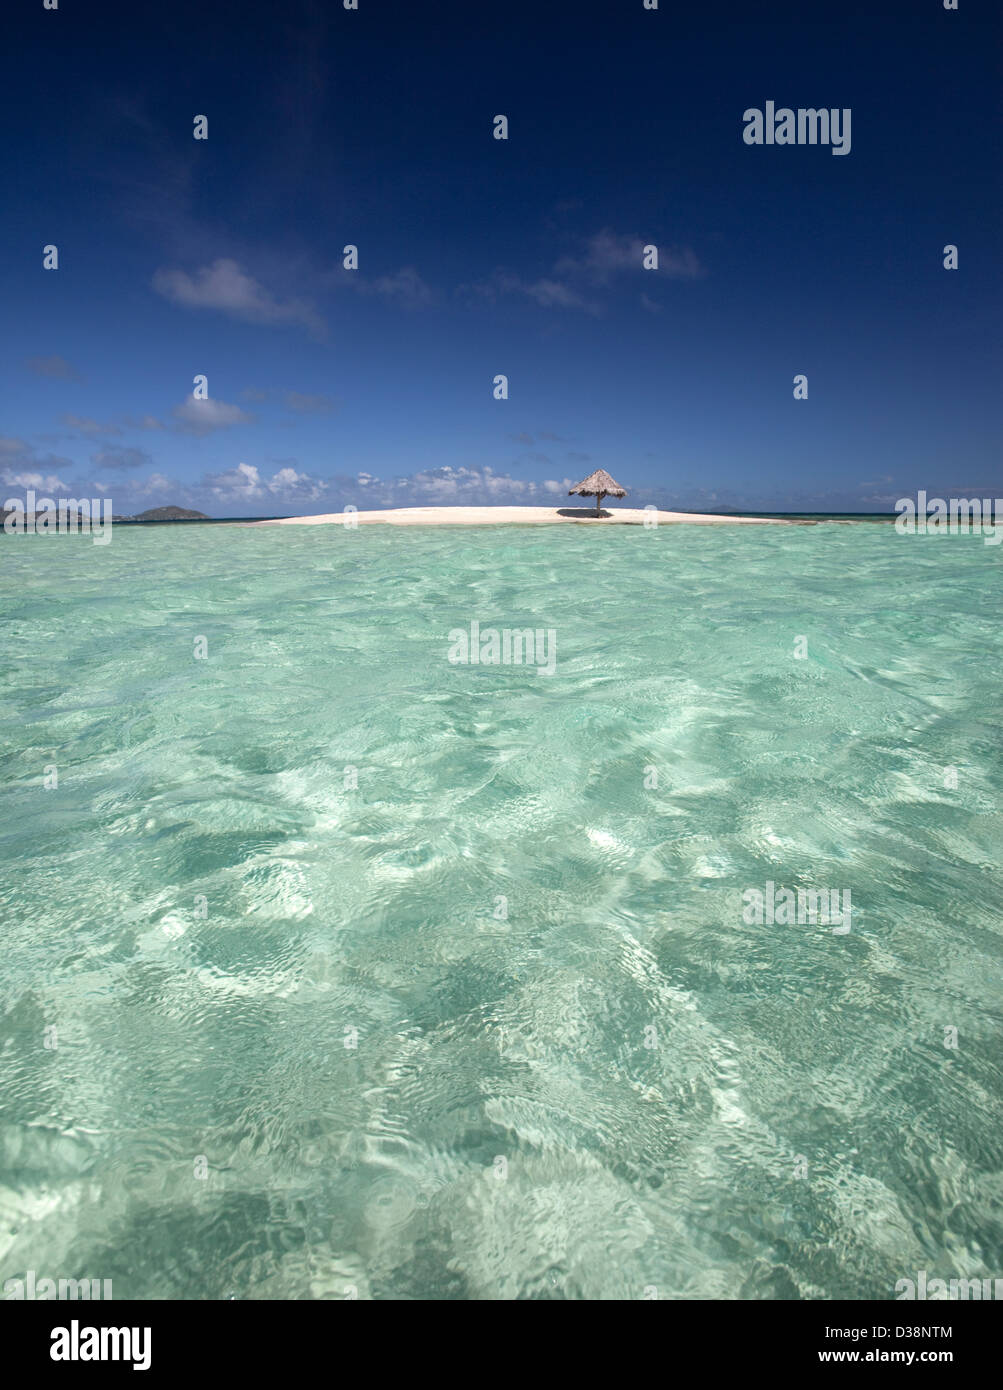 Tropical water and sandy beach - Stock Image